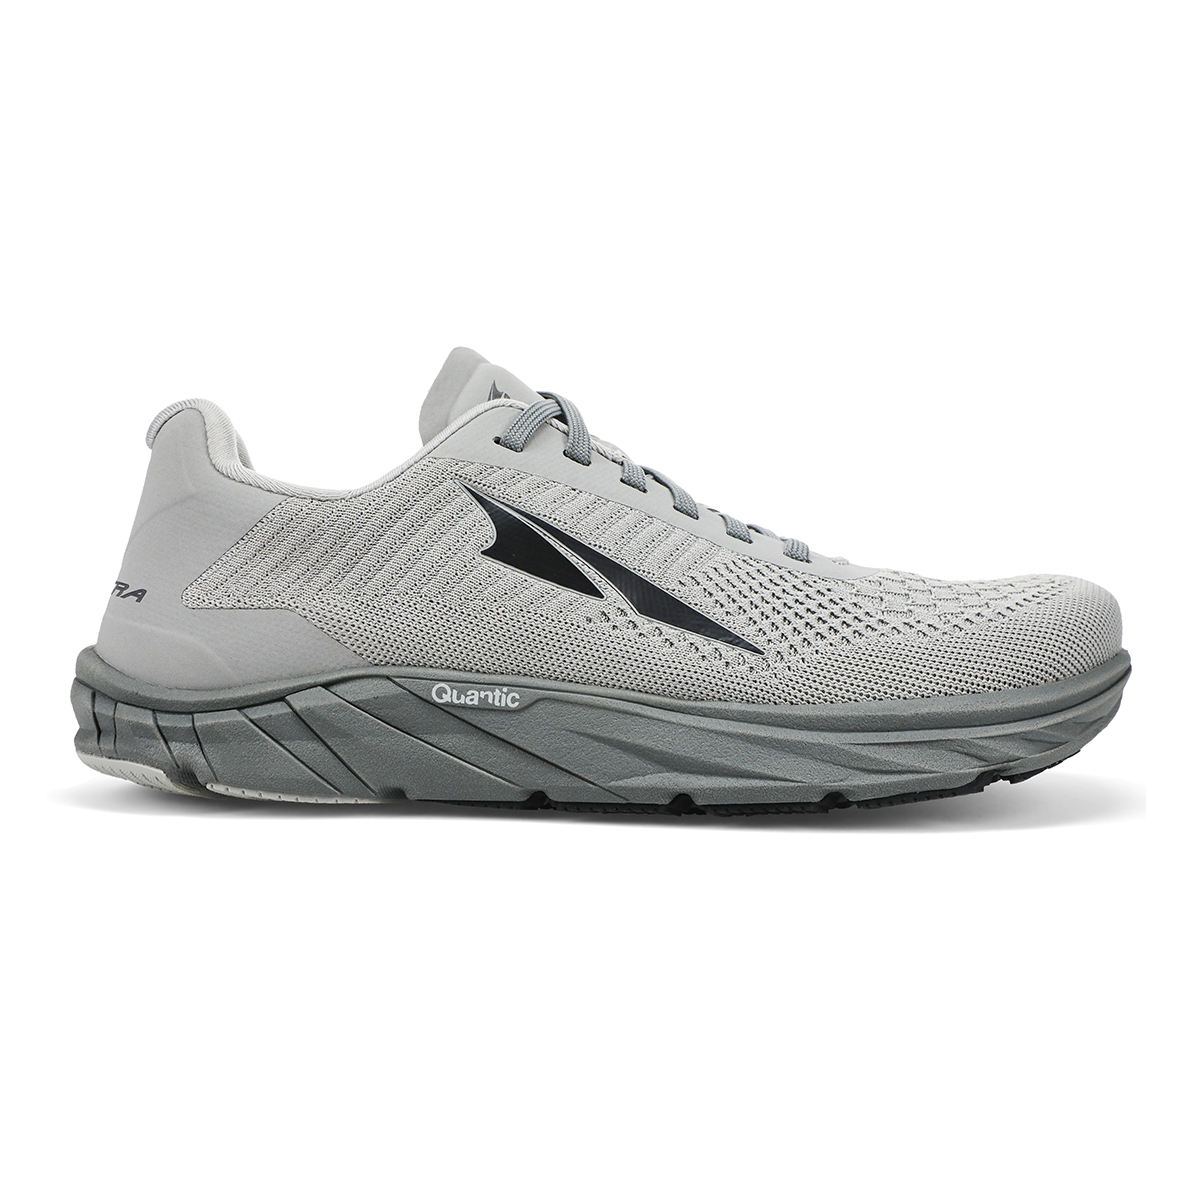 Men's Altra Torin 4.5 Plush Running Shoe - Color: Light Gray - Size: 11.5 - Width: Regular, Light Gray, large, image 1